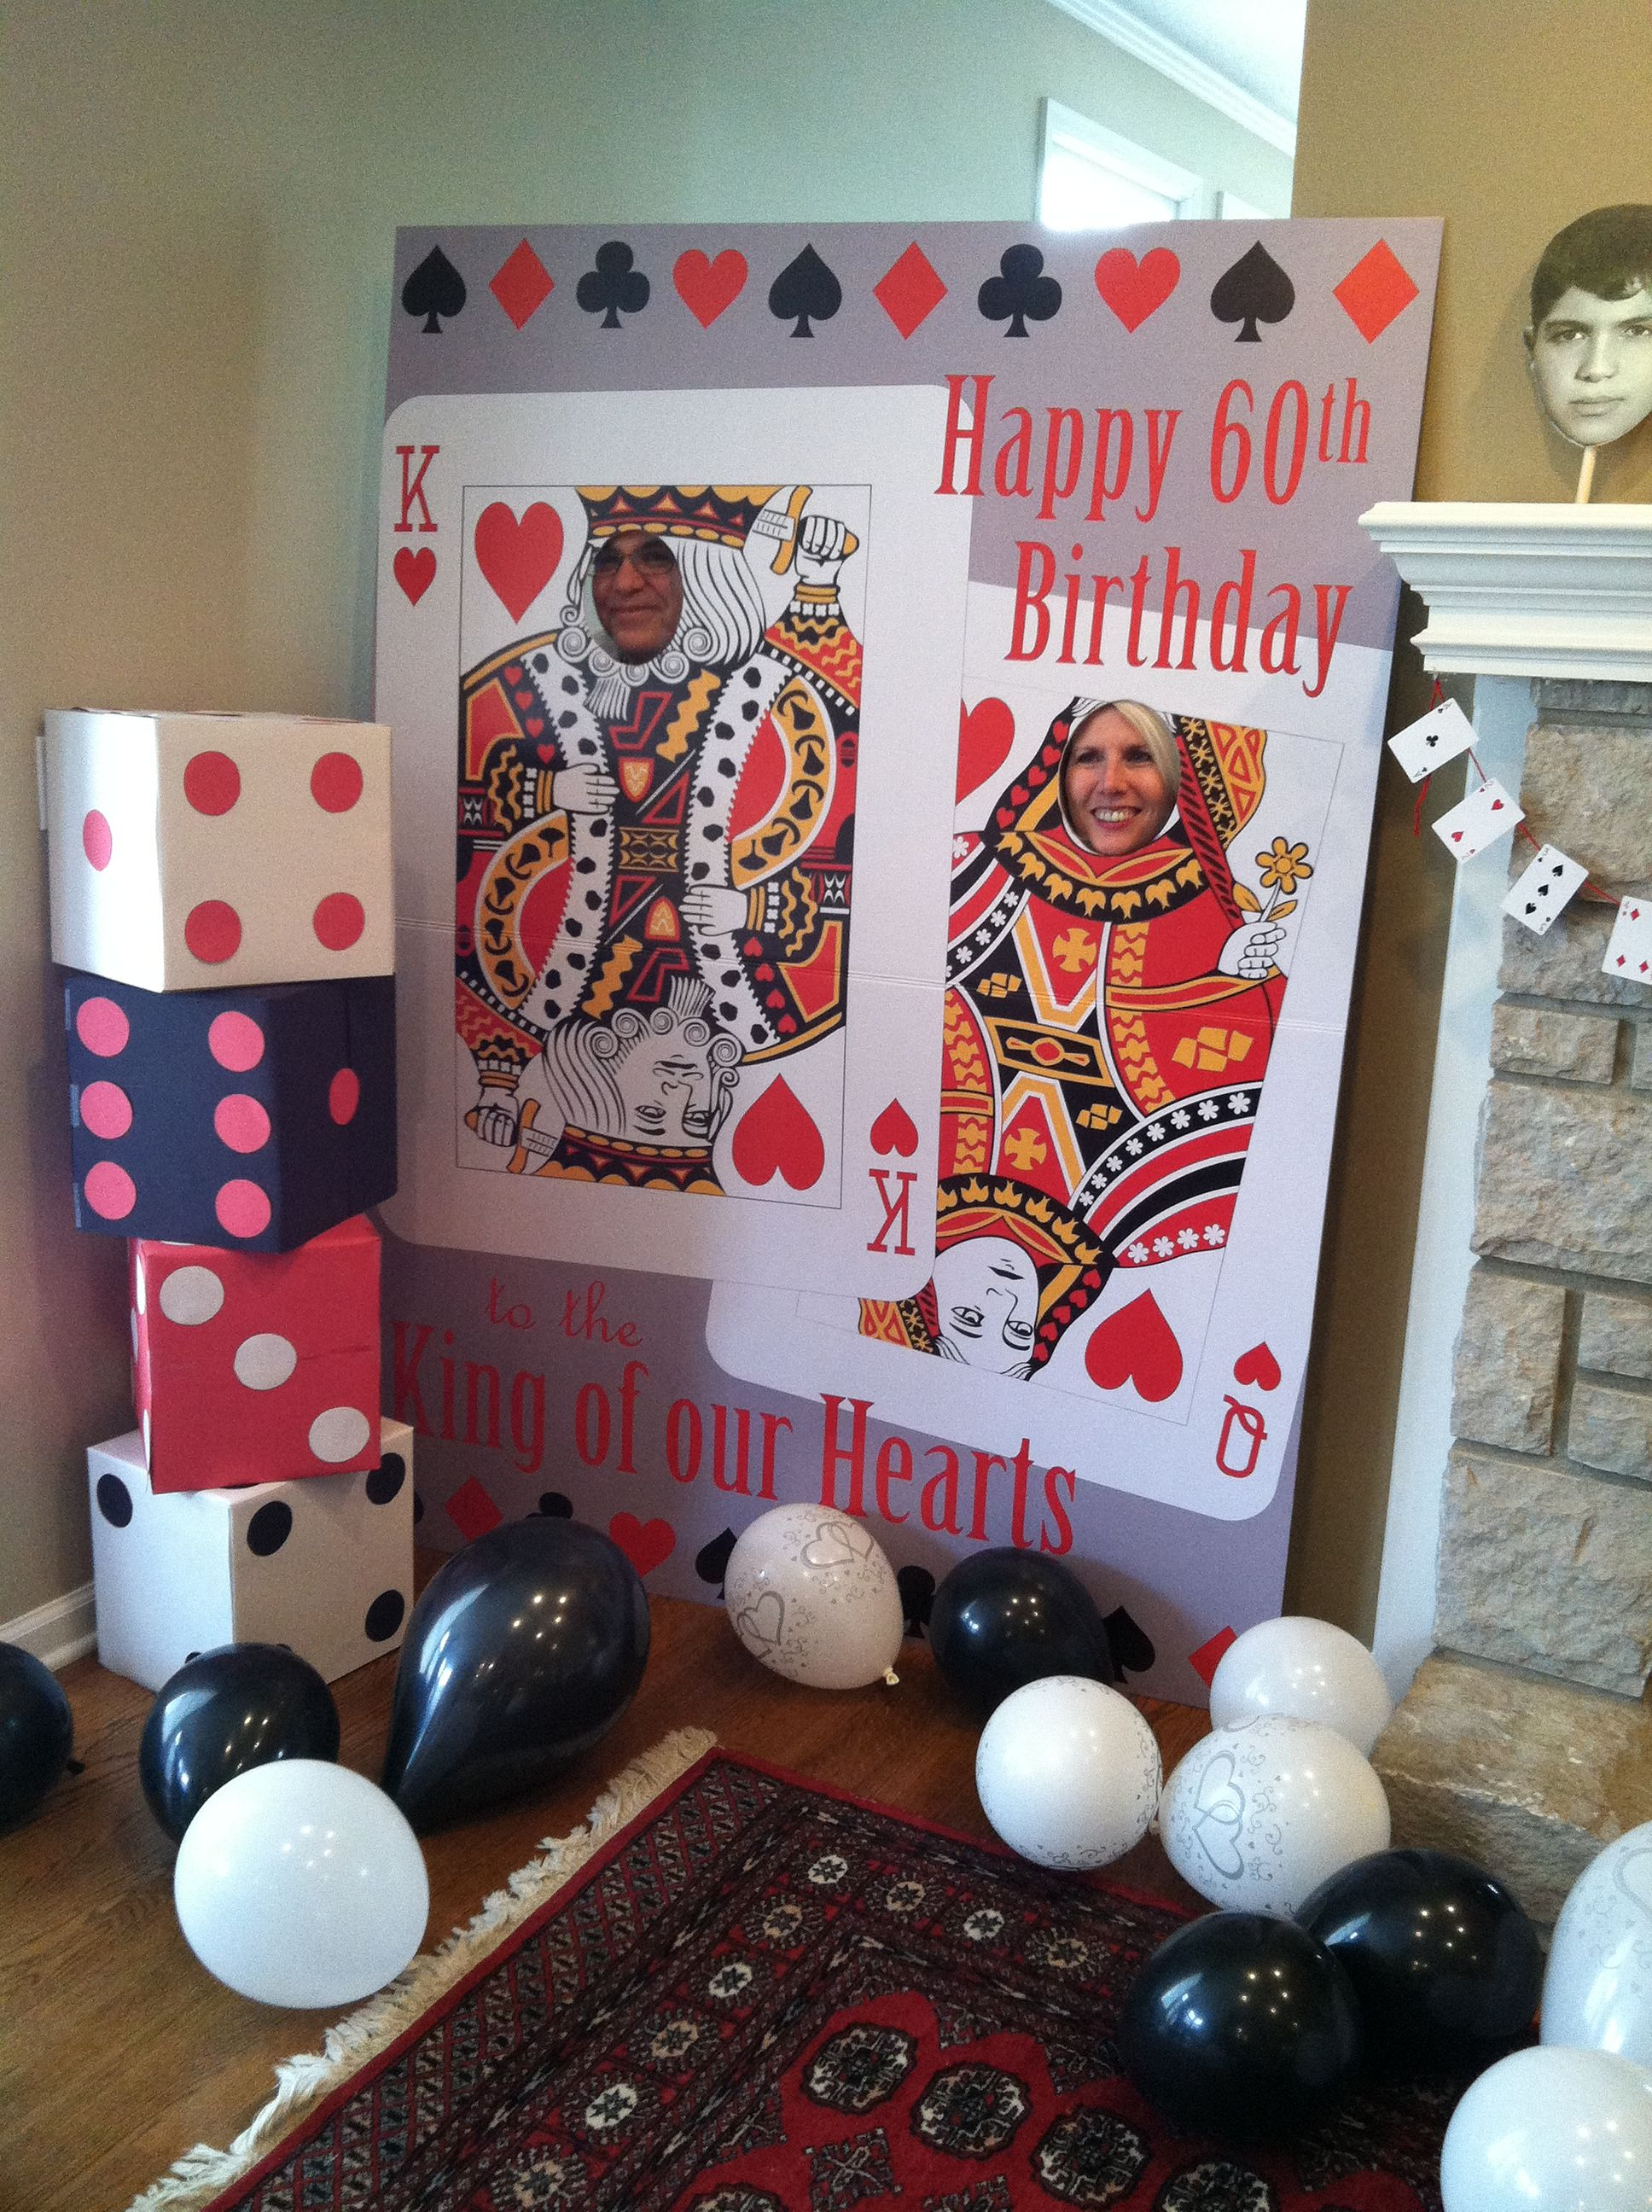 King of Our Hearts Poker theme 60th Birthday Party Decorations